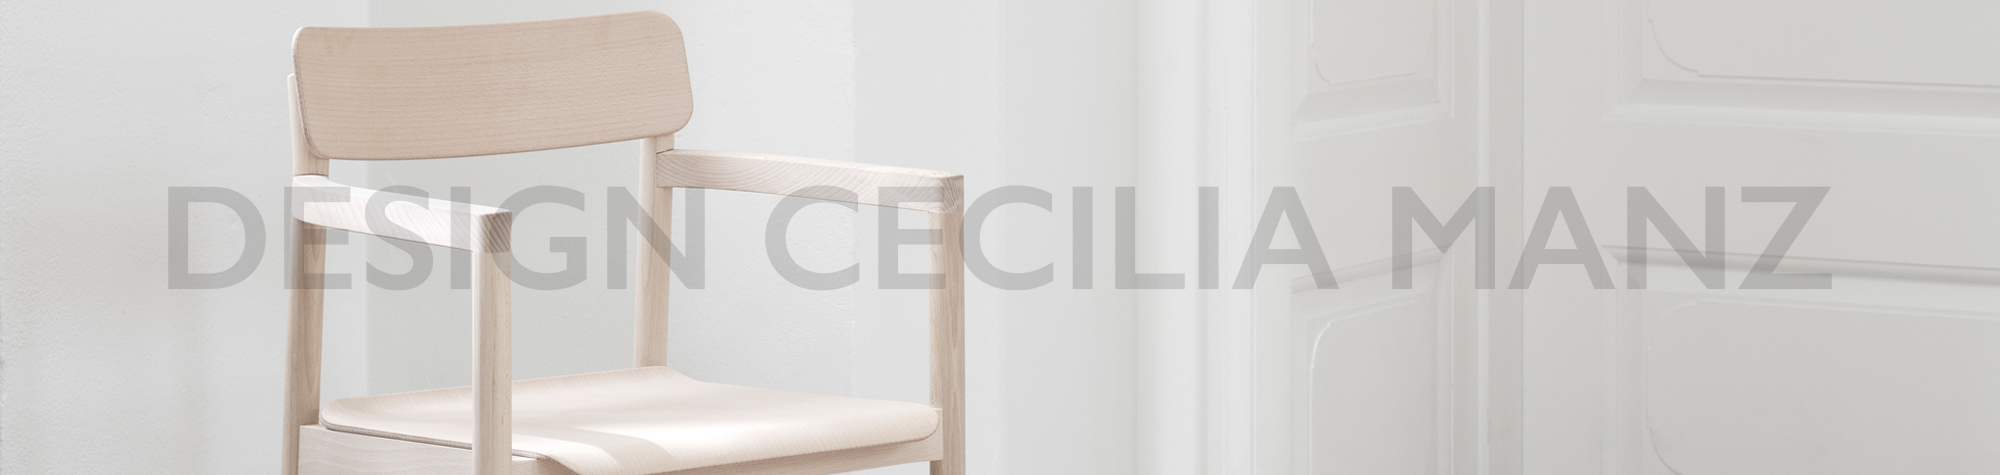 Cecilie Manz – The materials speak for themselves.